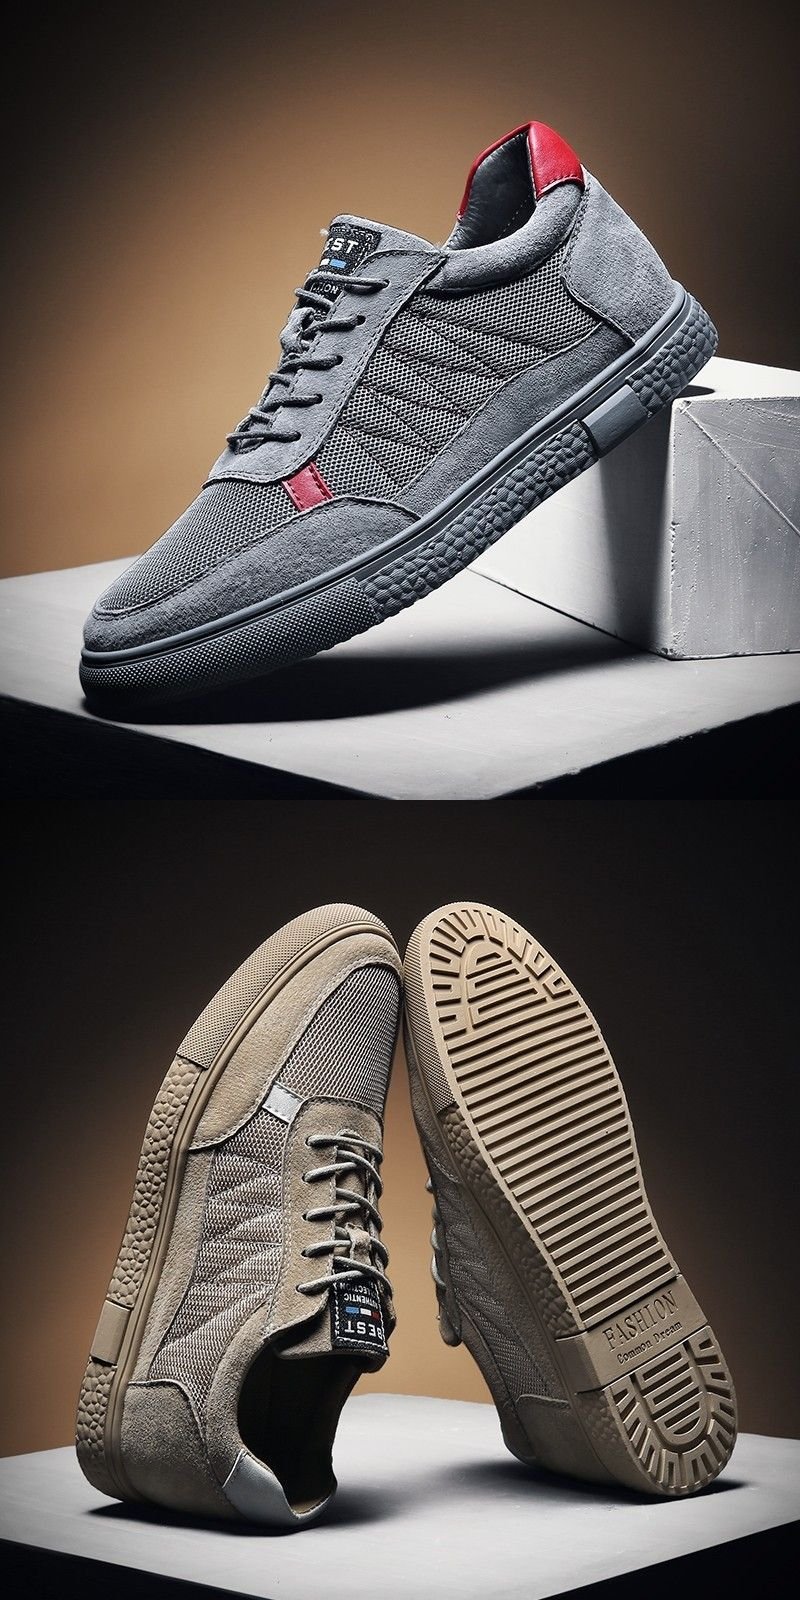 Sneakers  #casual  #shoes mens casual shoes, red shirt outfit men casual, korean fashion men casual, shirt outfit men casual, photoshoot men casual, fashion men casual, caqui pants outfit men casual, mens casual outfits spring, gray pants outfit men casual, polo shirt outfit men casual, jacket for men casual, brown pants outfit men casual, beach outfit men casual, mens casual outfits fall, grey shirt outfit men casual, moda men casual, mens casual outfits summer, clothes men casual, square shirt